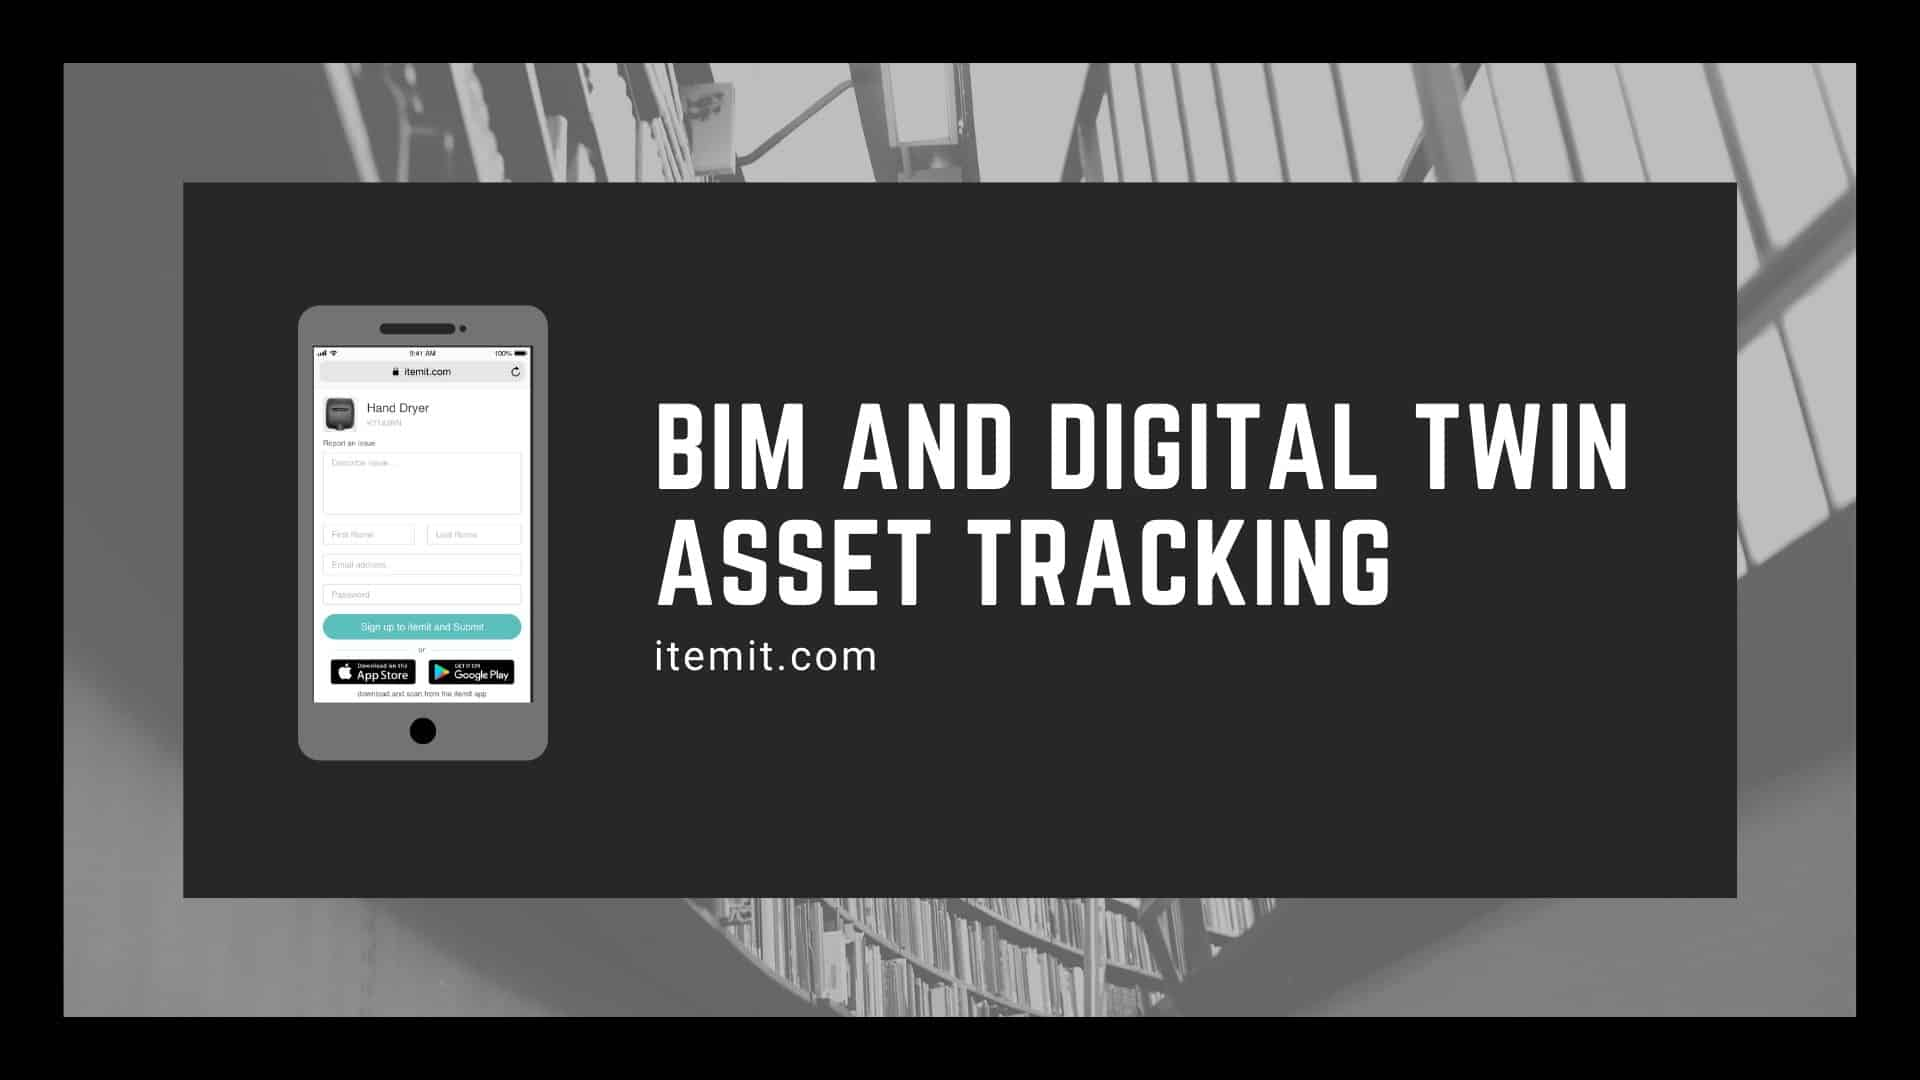 BIM and digital twin asset tracking